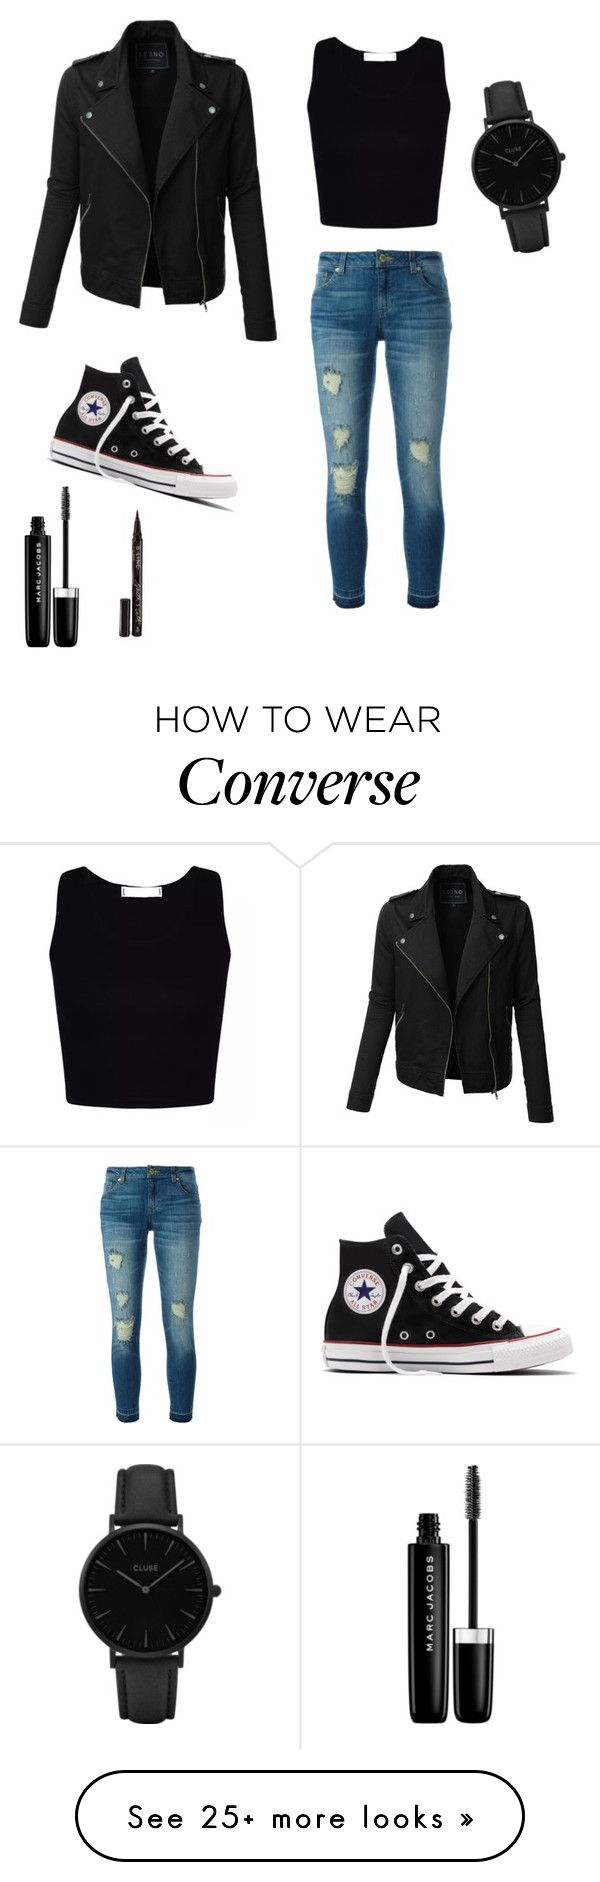 """""""#polyvore"""" by mina-polyvore on Polyvore featuring MICHAEL Michael Kors, LE3NO, Converse, Marc Jacobs, Smith & Cult and CLUSE"""